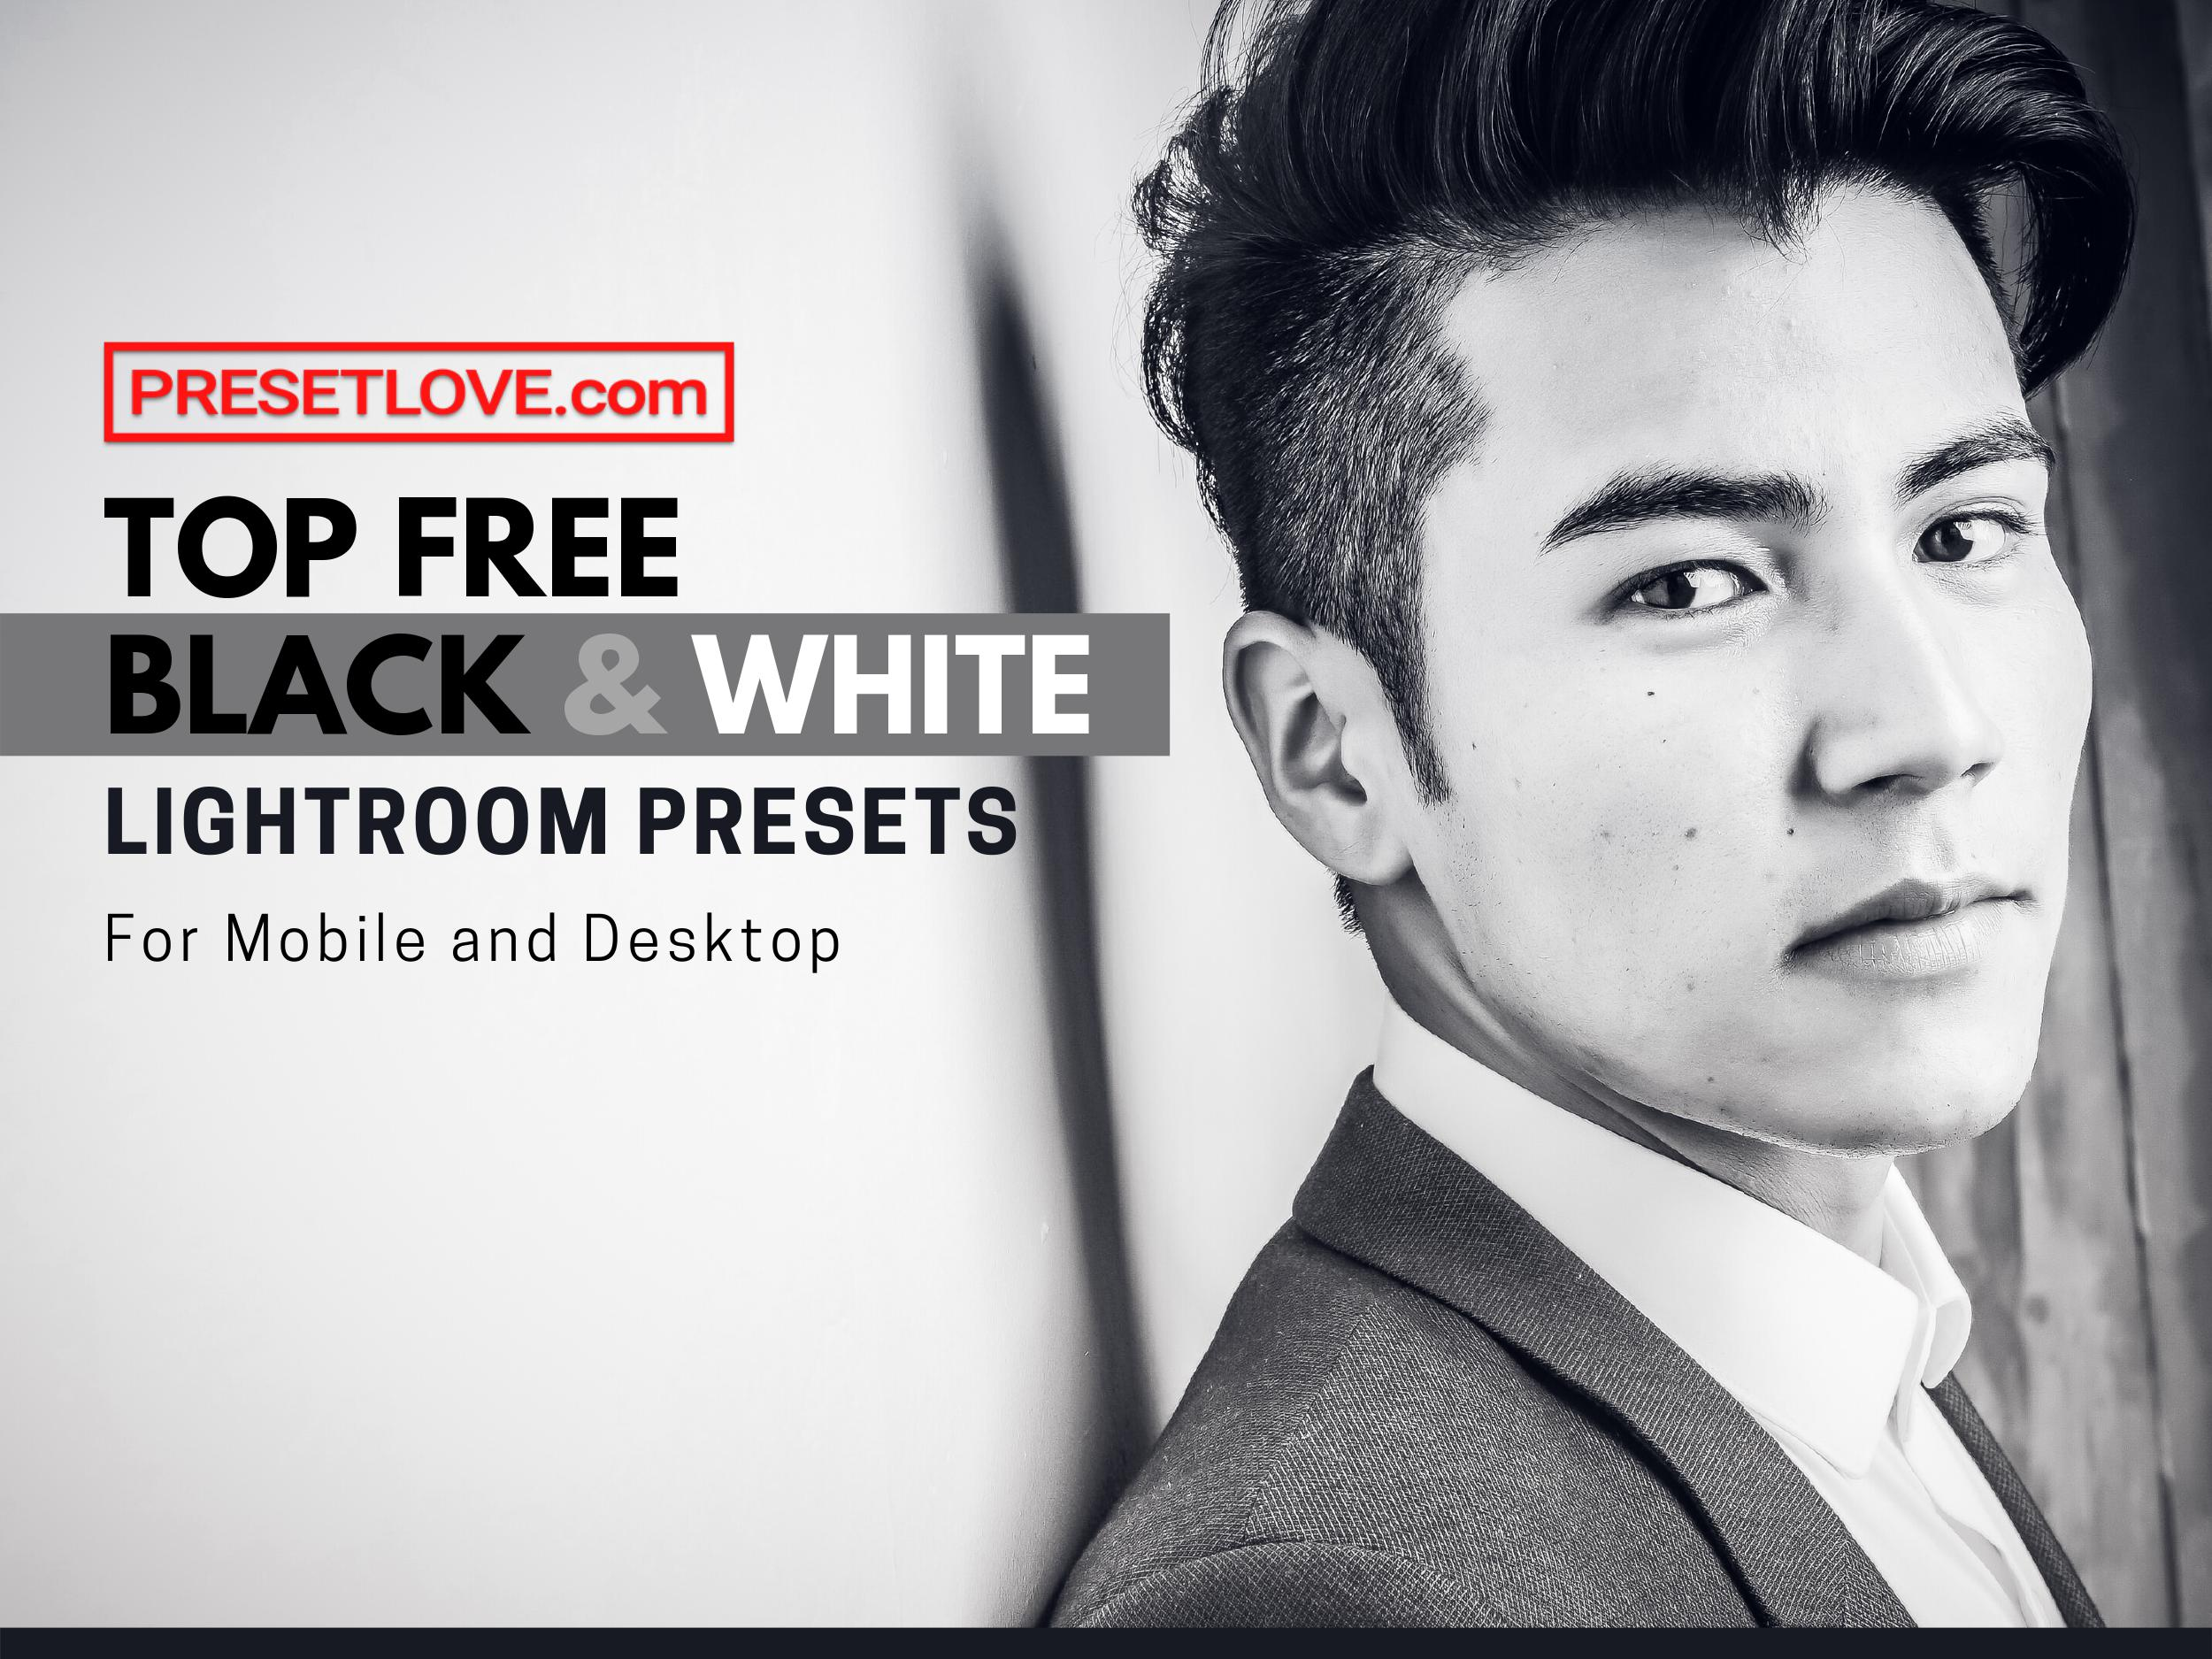 Top Free Black and White Lightroom Presets for Mobile and Desktop - PresetLove